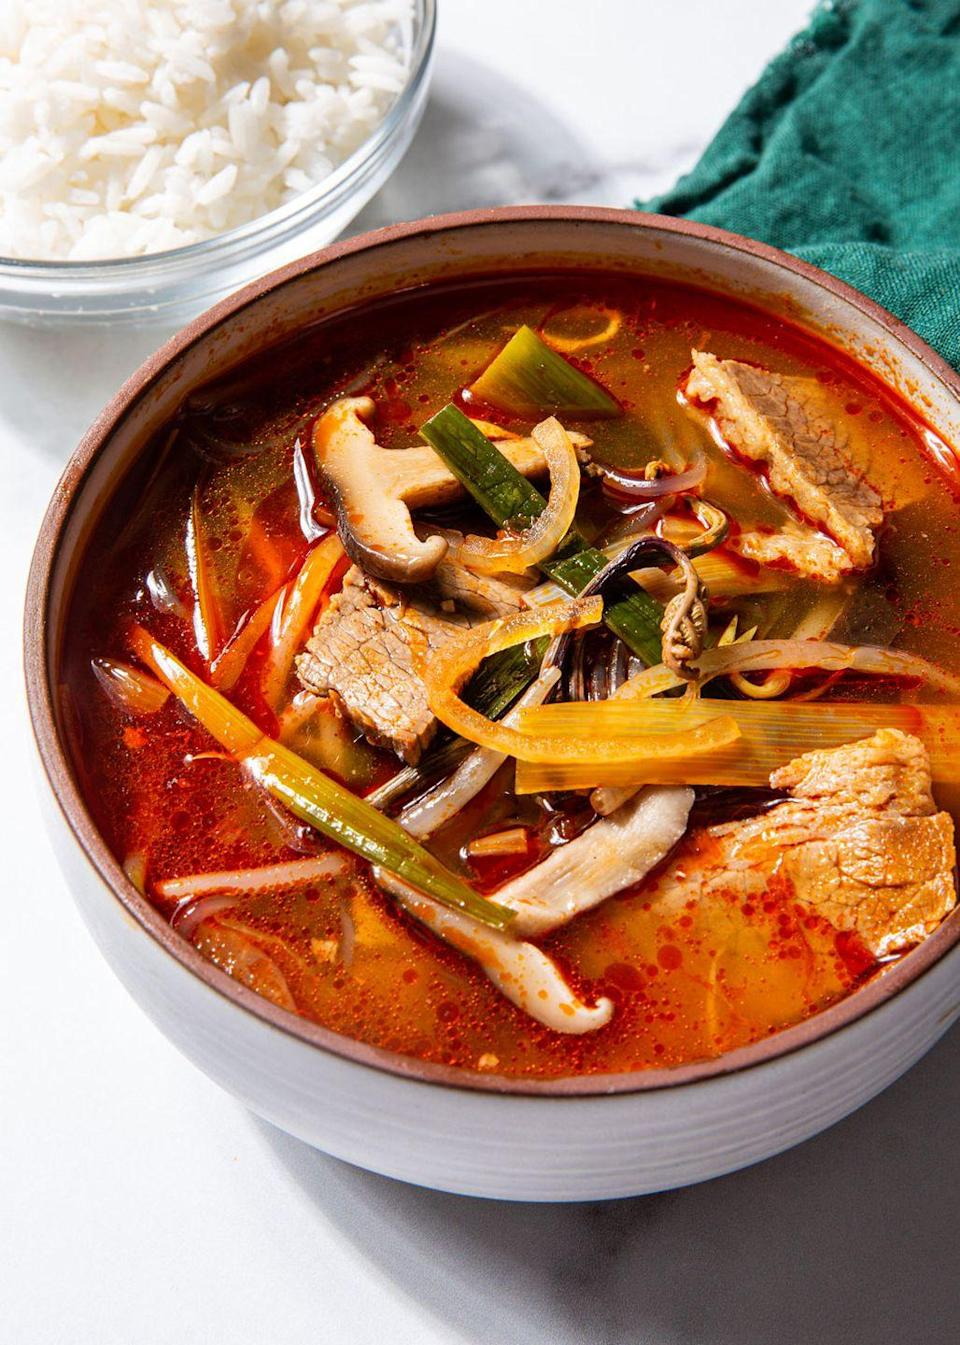 """<p>If you haven't had it, it's life changing. If you have had it, you have dreamed about making it at home. </p><p>Get the recipe from <a href=""""https://www.delish.com/cooking/recipe-ideas/a35047733/korean-soup-yukgaejang-recipe/"""" rel=""""nofollow noopener"""" target=""""_blank"""" data-ylk=""""slk:Delish"""" class=""""link rapid-noclick-resp"""">Delish</a>.</p>"""